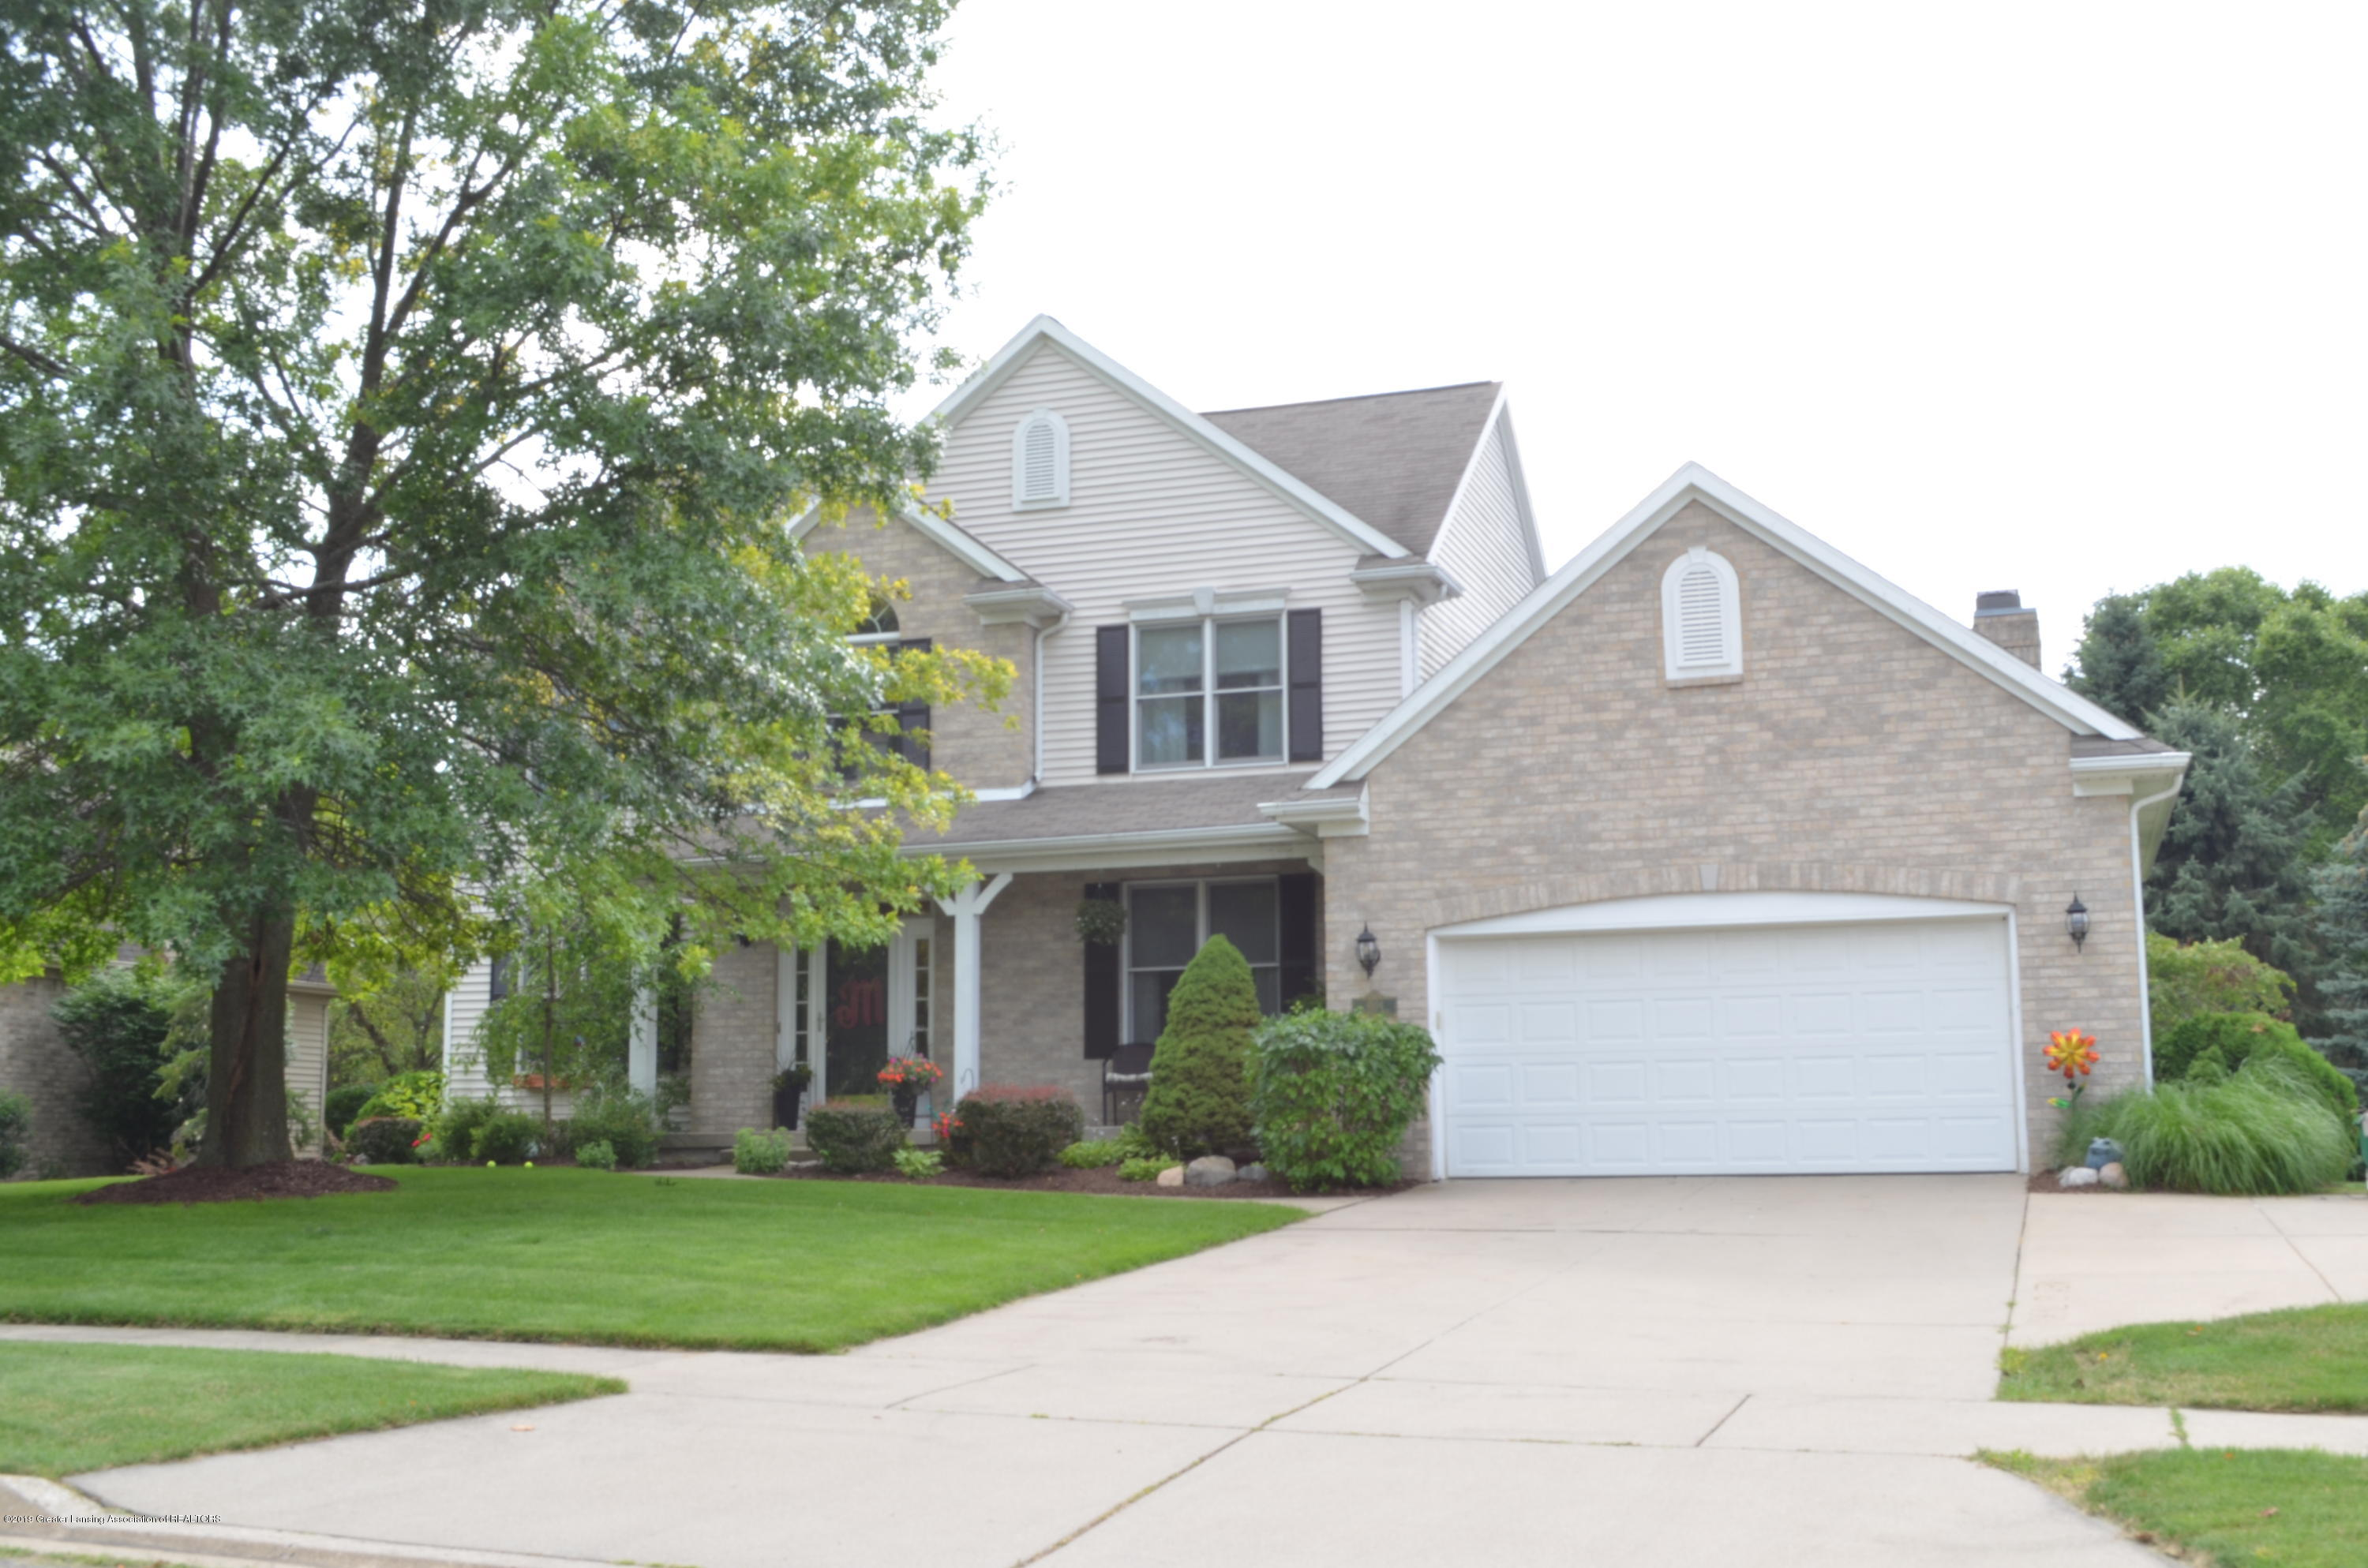 4554 Spicewood Dr N - Front View - 1